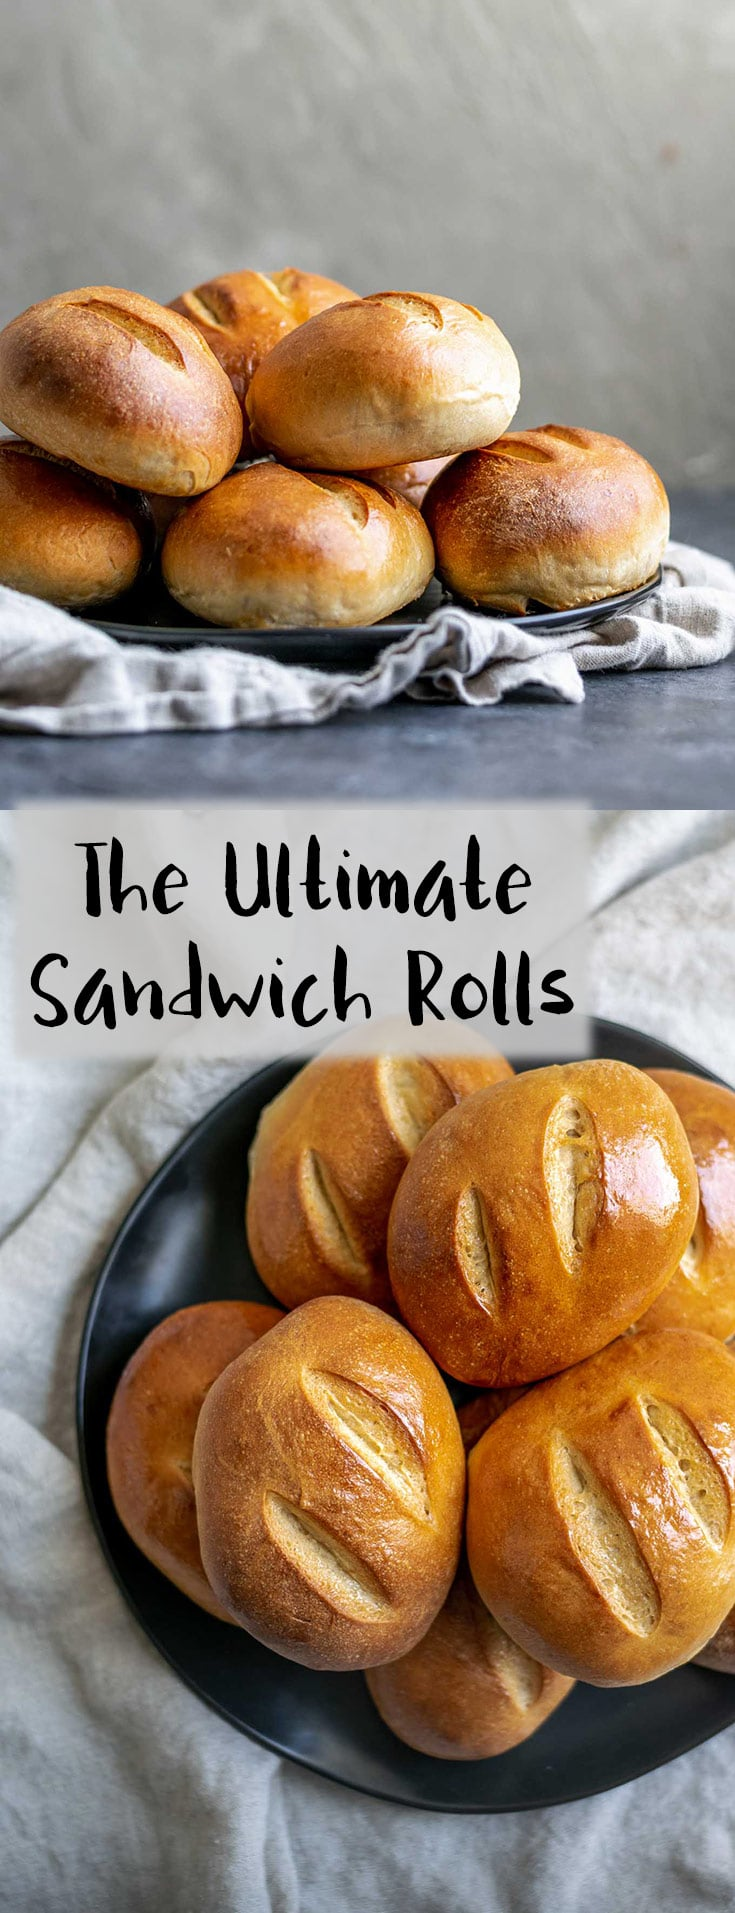 A soft and slightly crusty bread perfect for stuffing with your favorite sandwich fillings. A lightly enriched dough, these ultimate homemade sandwich rolls make great tortas, banh mi, subs, and more! | thecuriouschickpea.com